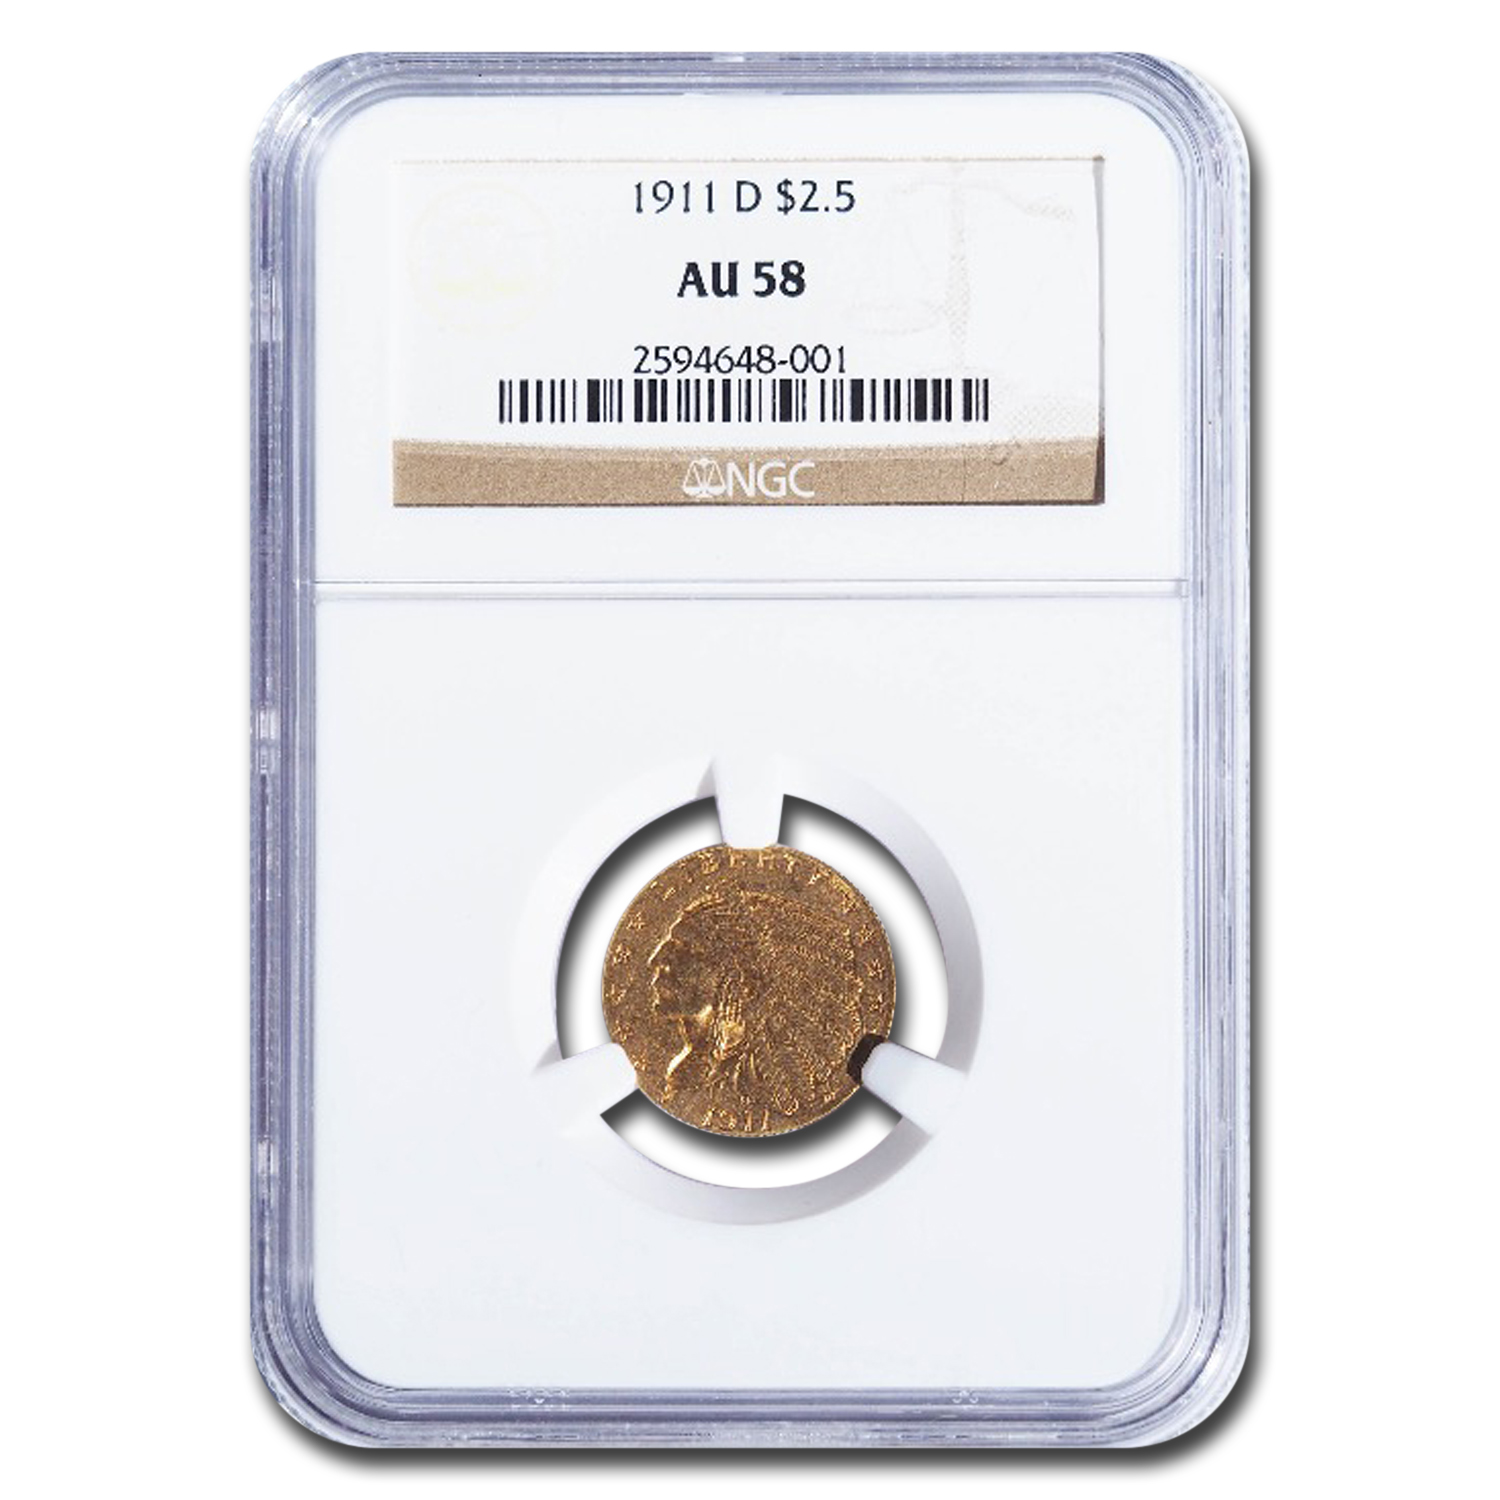 1911-D $2.50 Indian Gold Quarter Eagle - AU-58 NGC - Key Date!